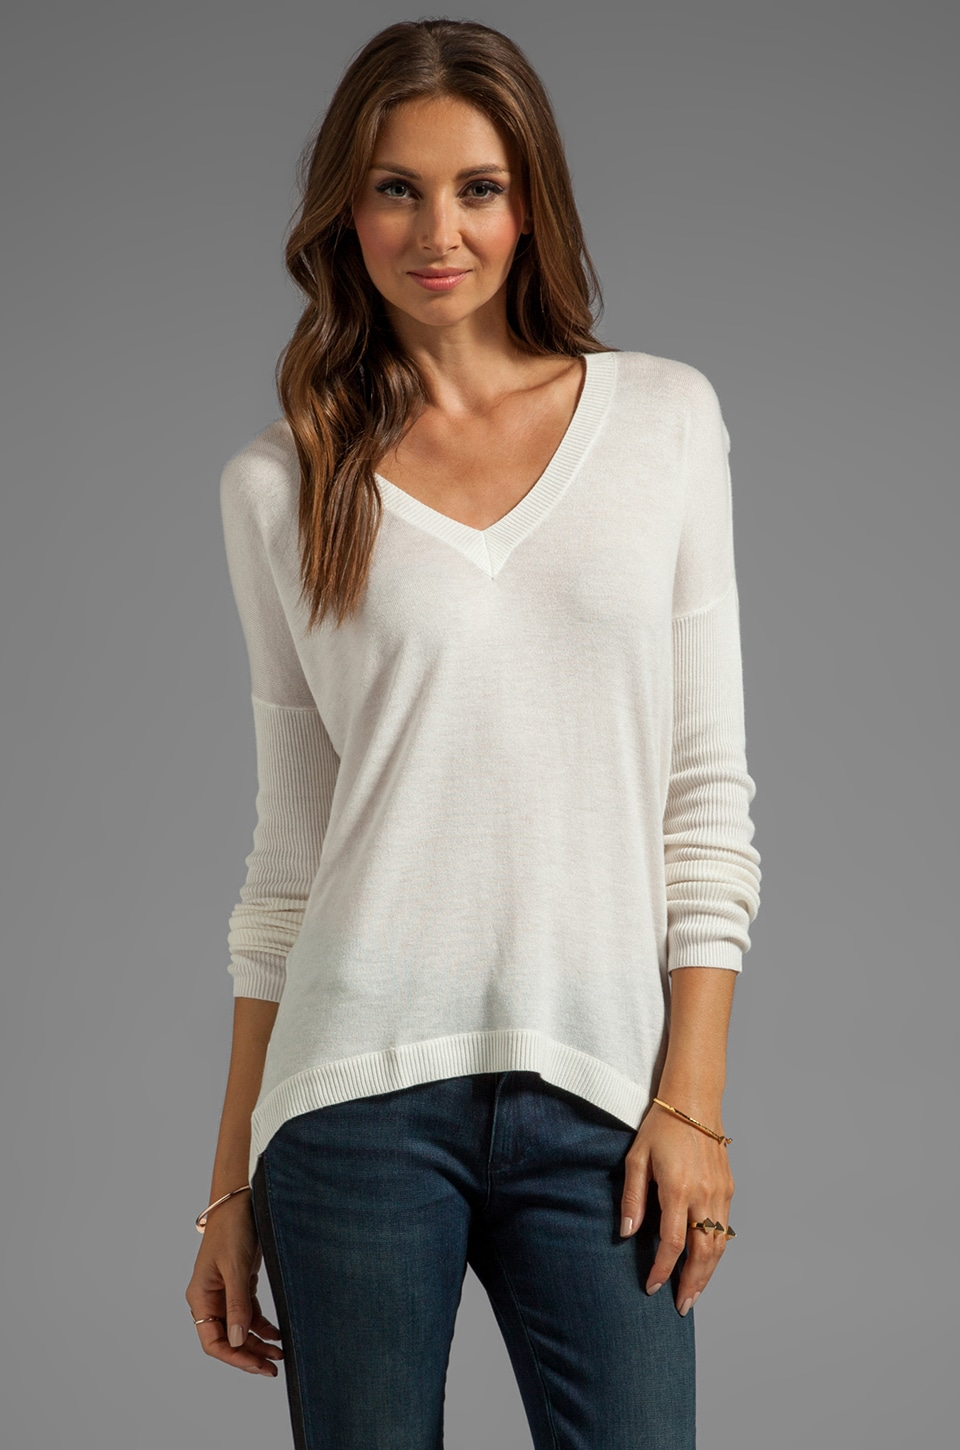 Feel the Piece V Neck Sweater in Winter White